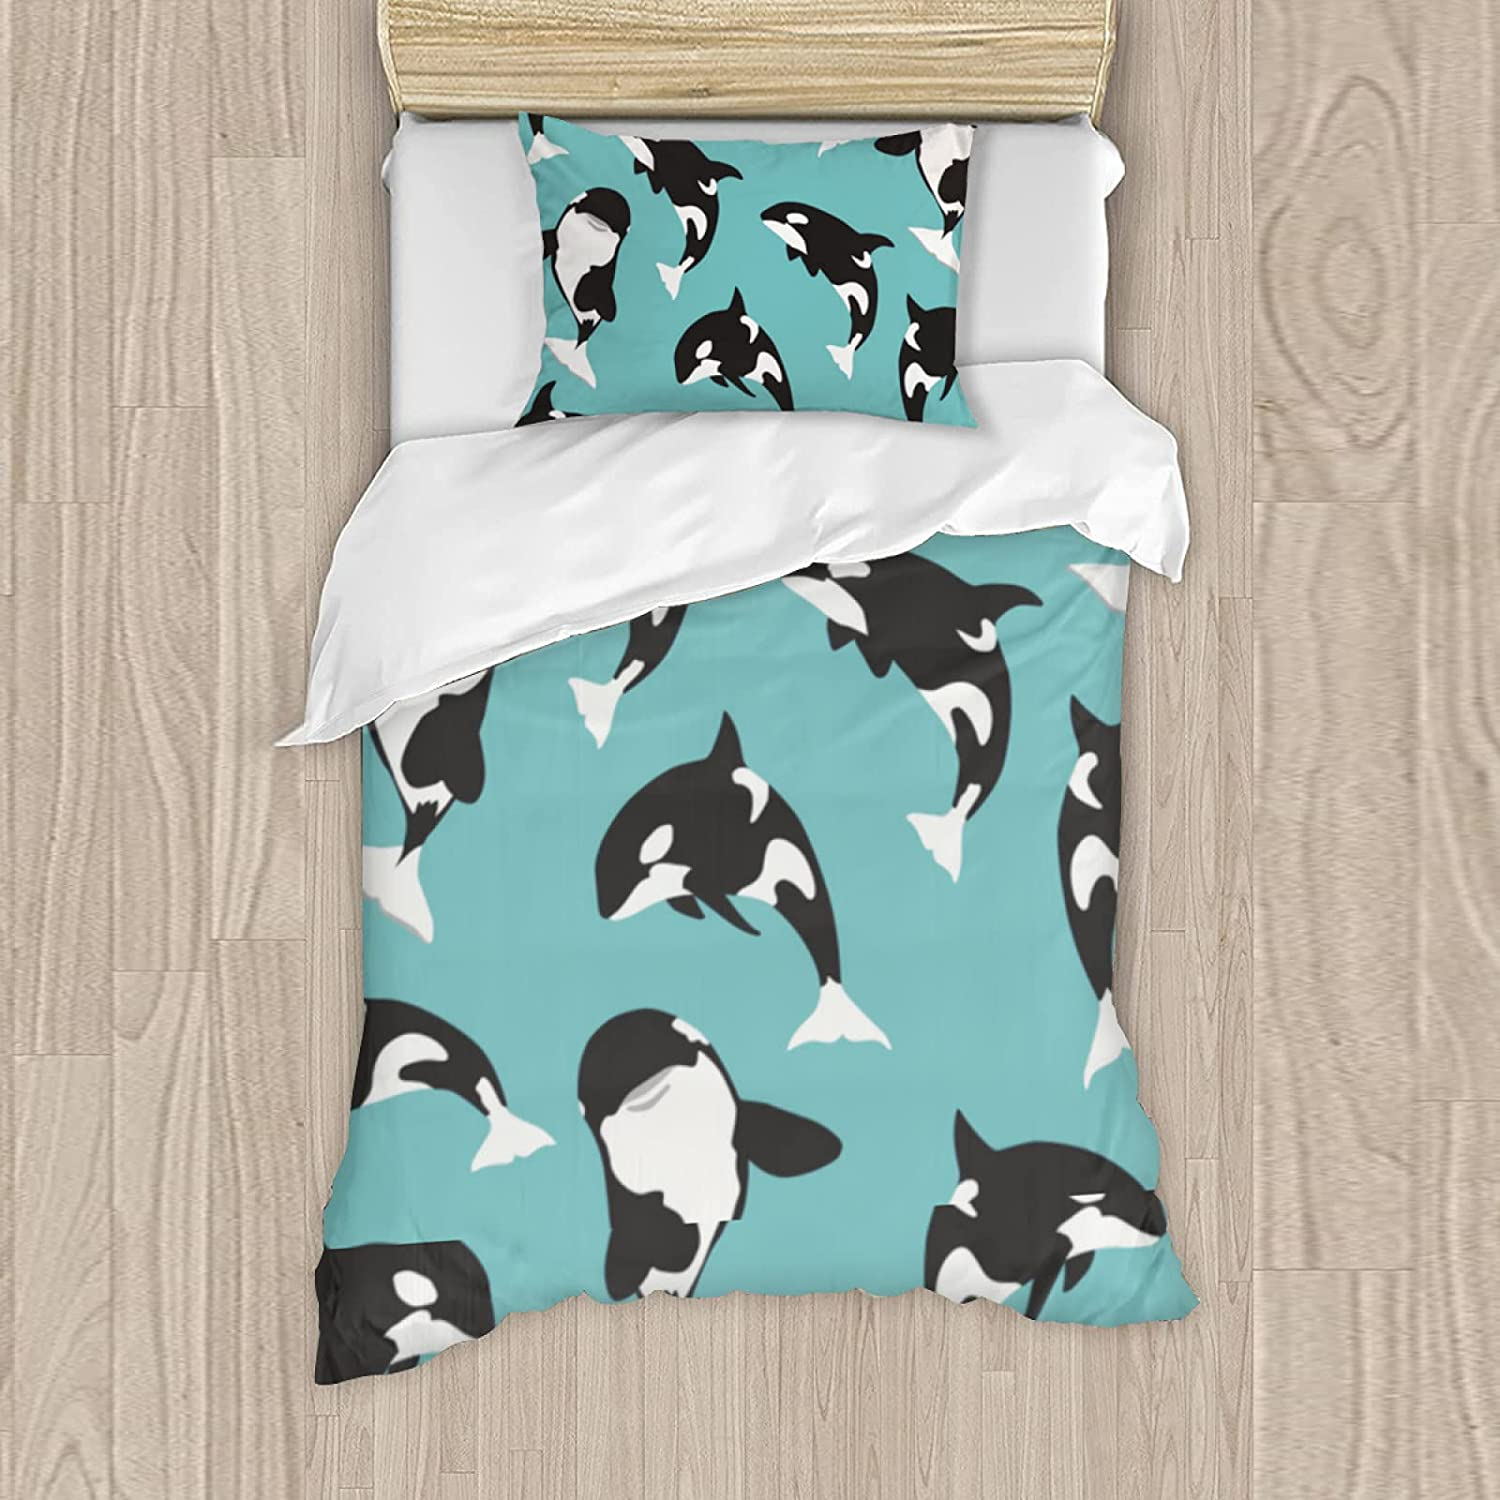 Orca Whale Pattern Bedding Set Kids Boy Max 89% OFF B Cover Decor Duvet Quantity limited Teen